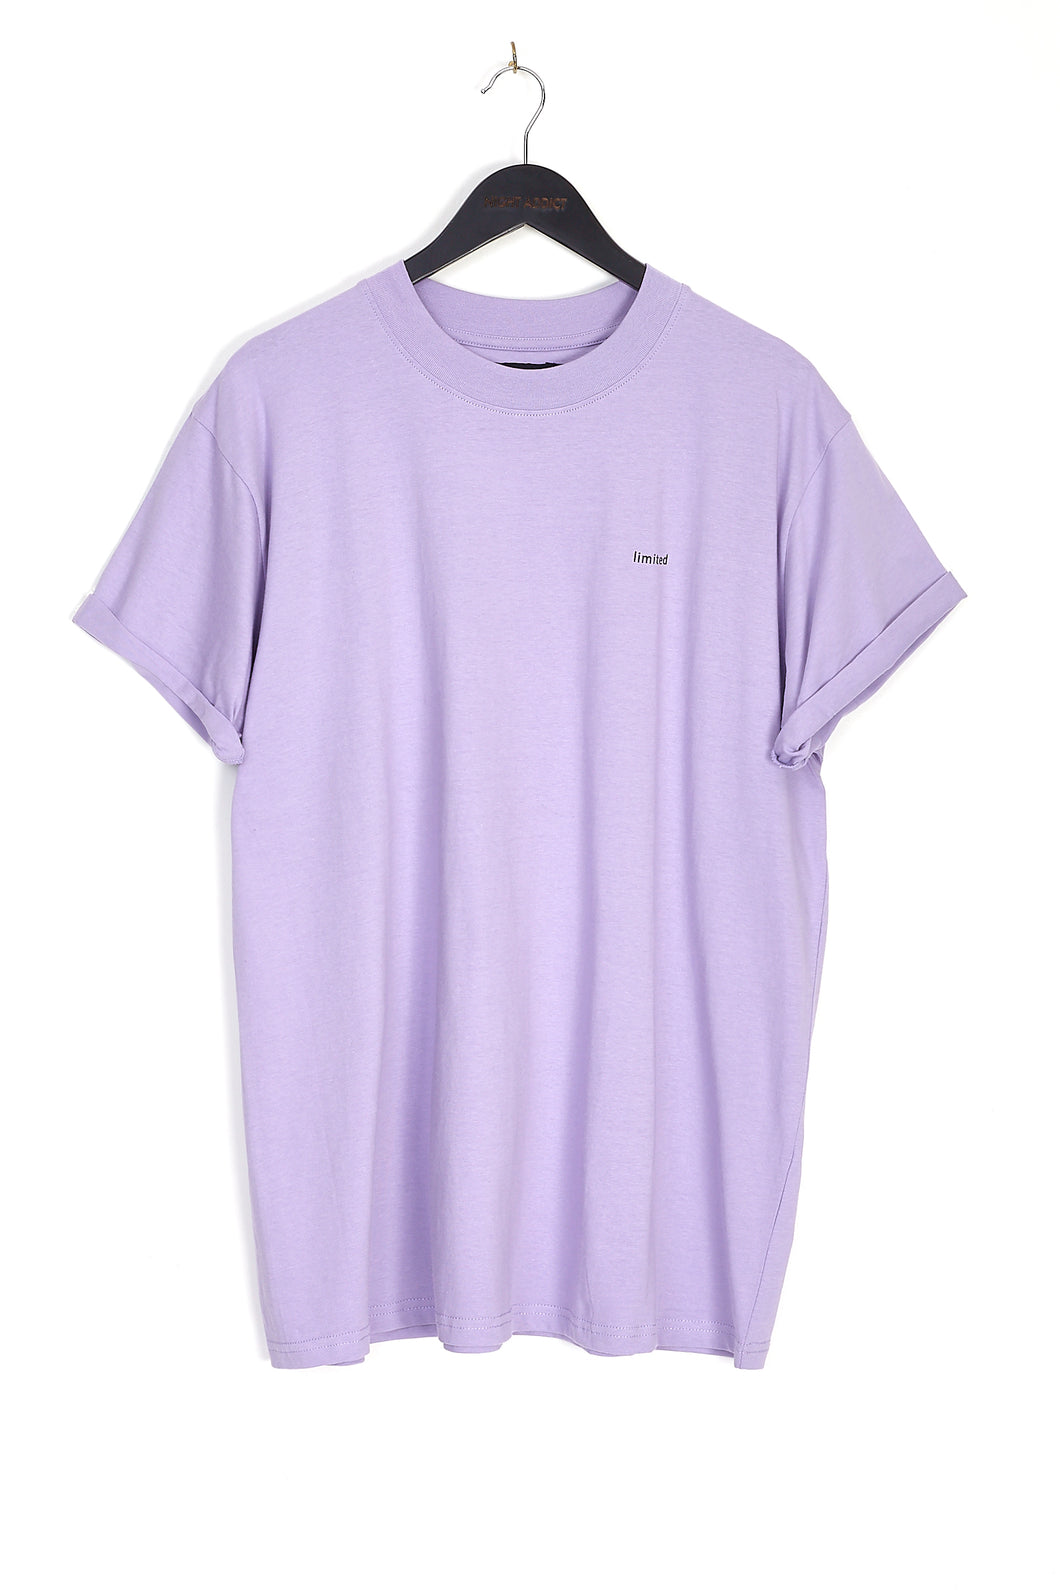 NIGHT ADDICT LILAC LIMITED OVERSIZED T-SHIRT FRONT